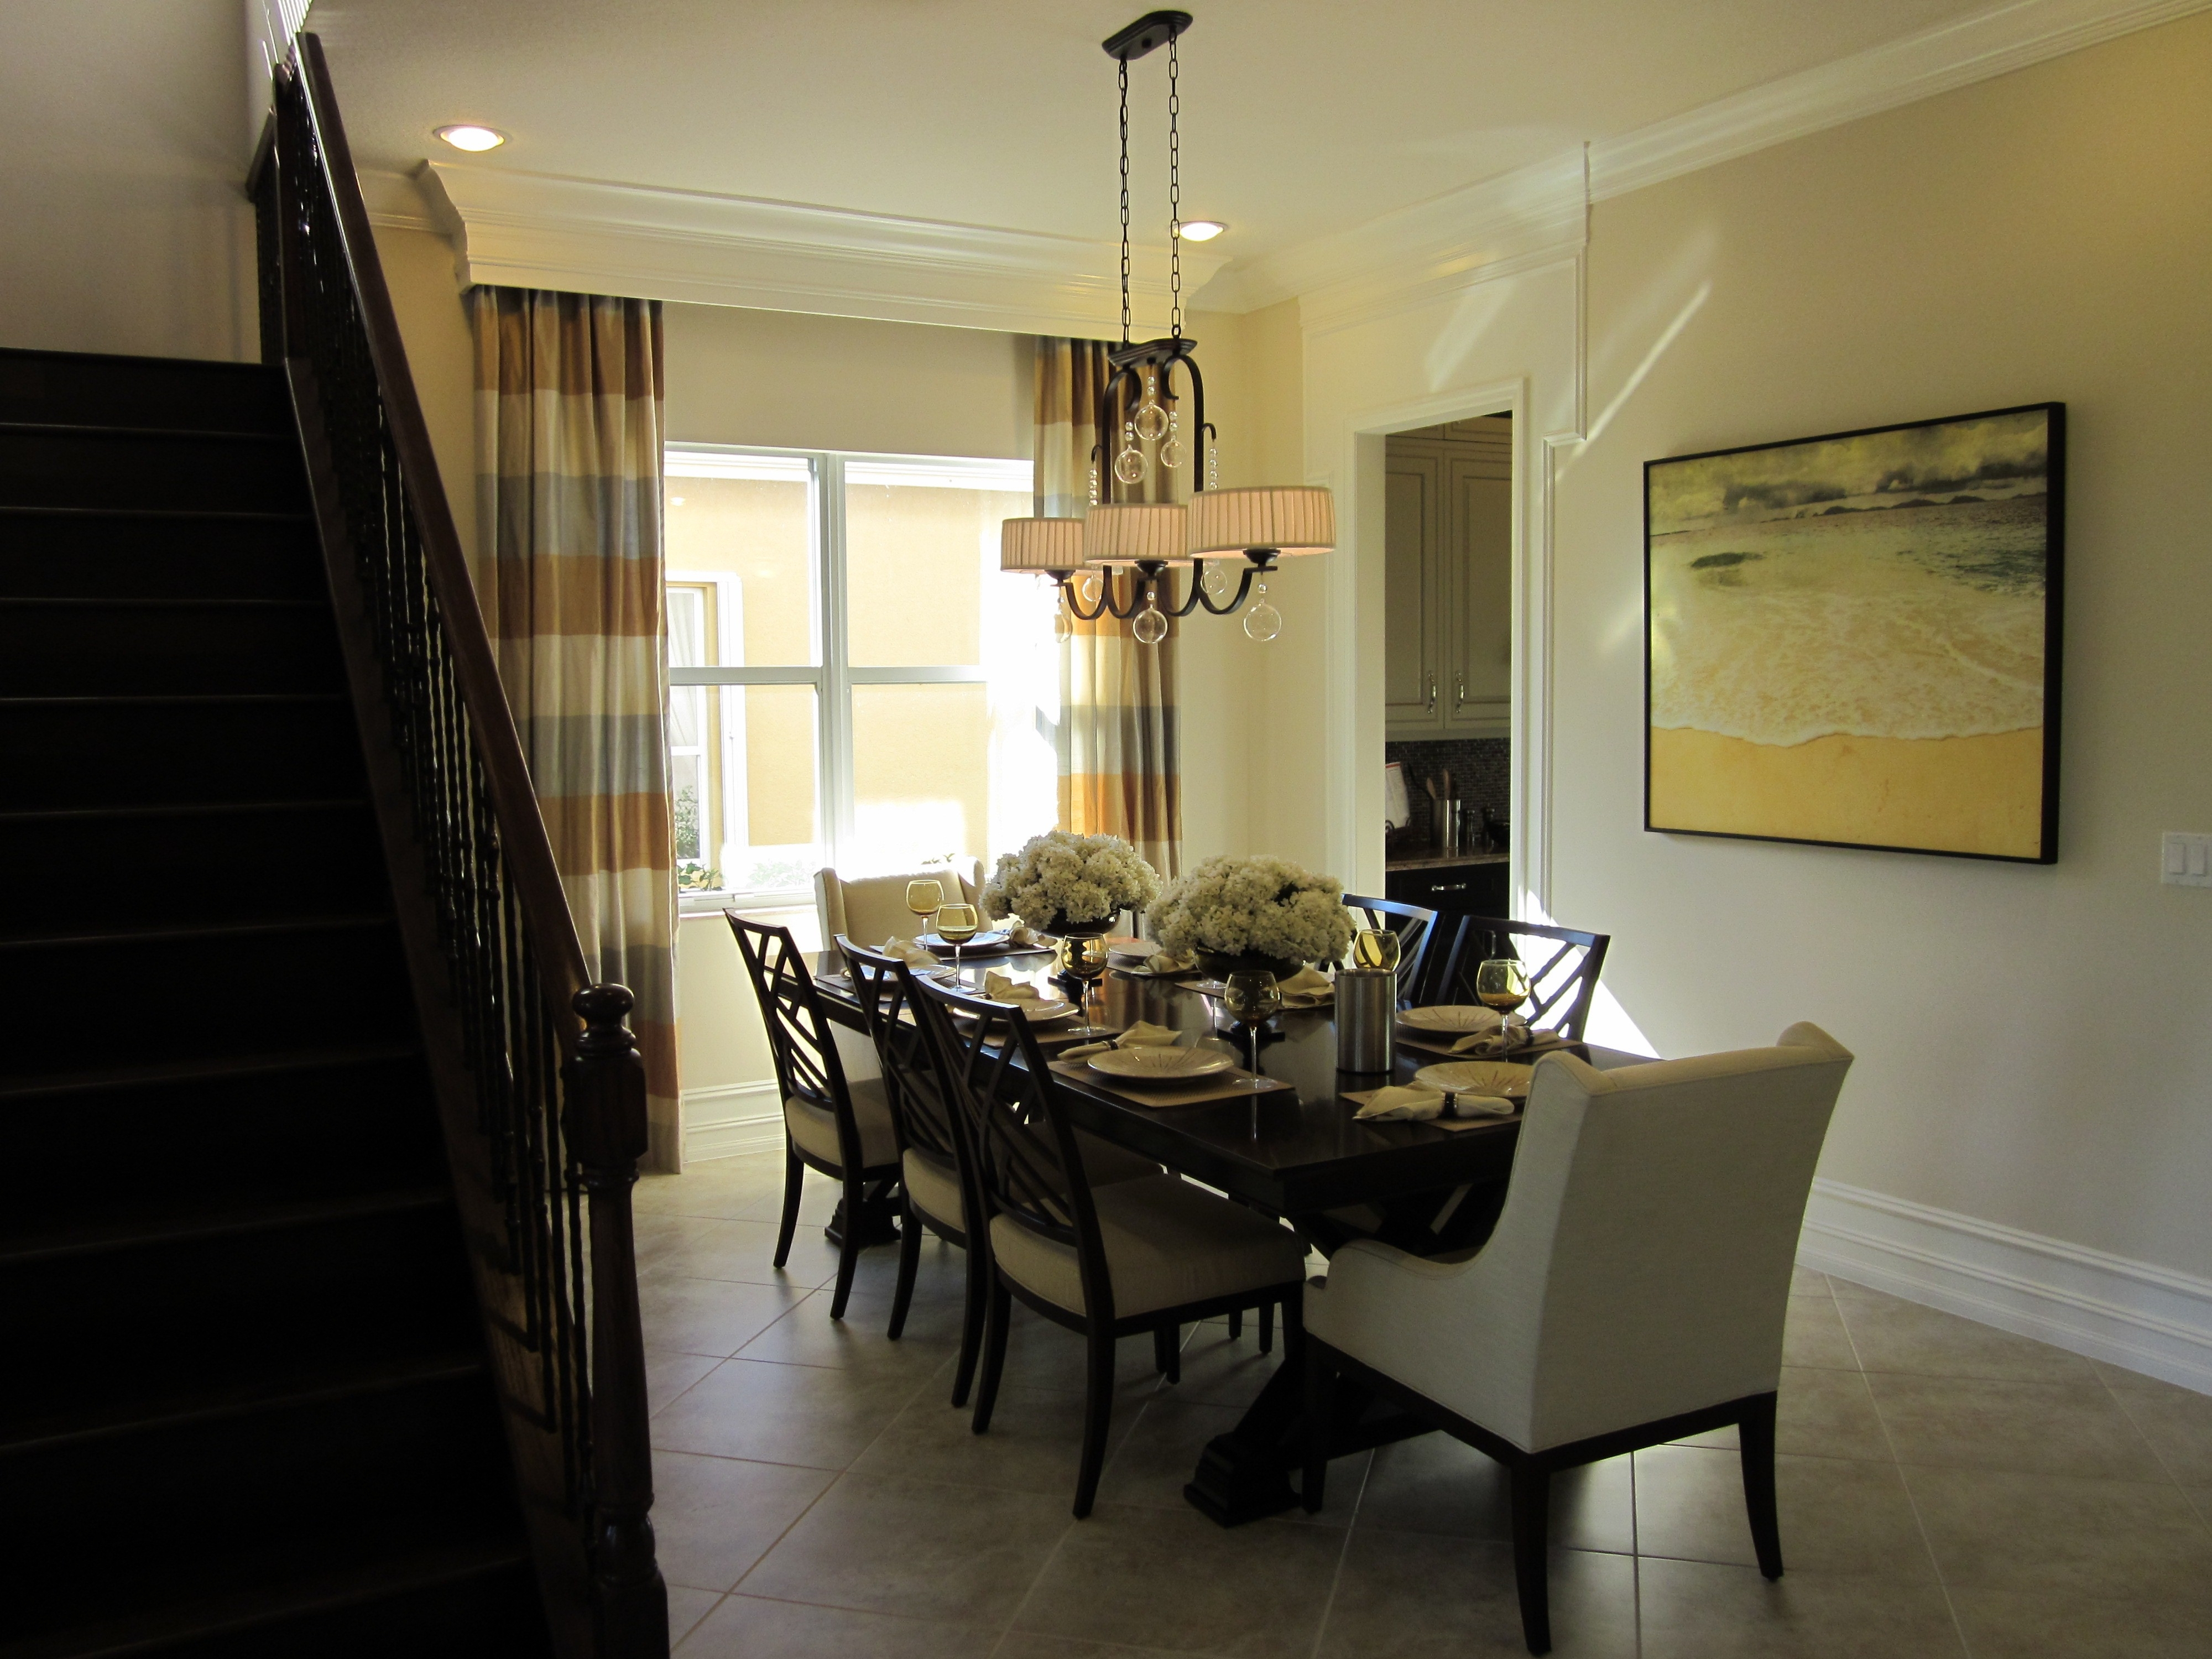 Large Dining Room Chandeliers Interior Decor Fill Your Home Throughout Long Hanging Chandeliers (Image 10 of 15)